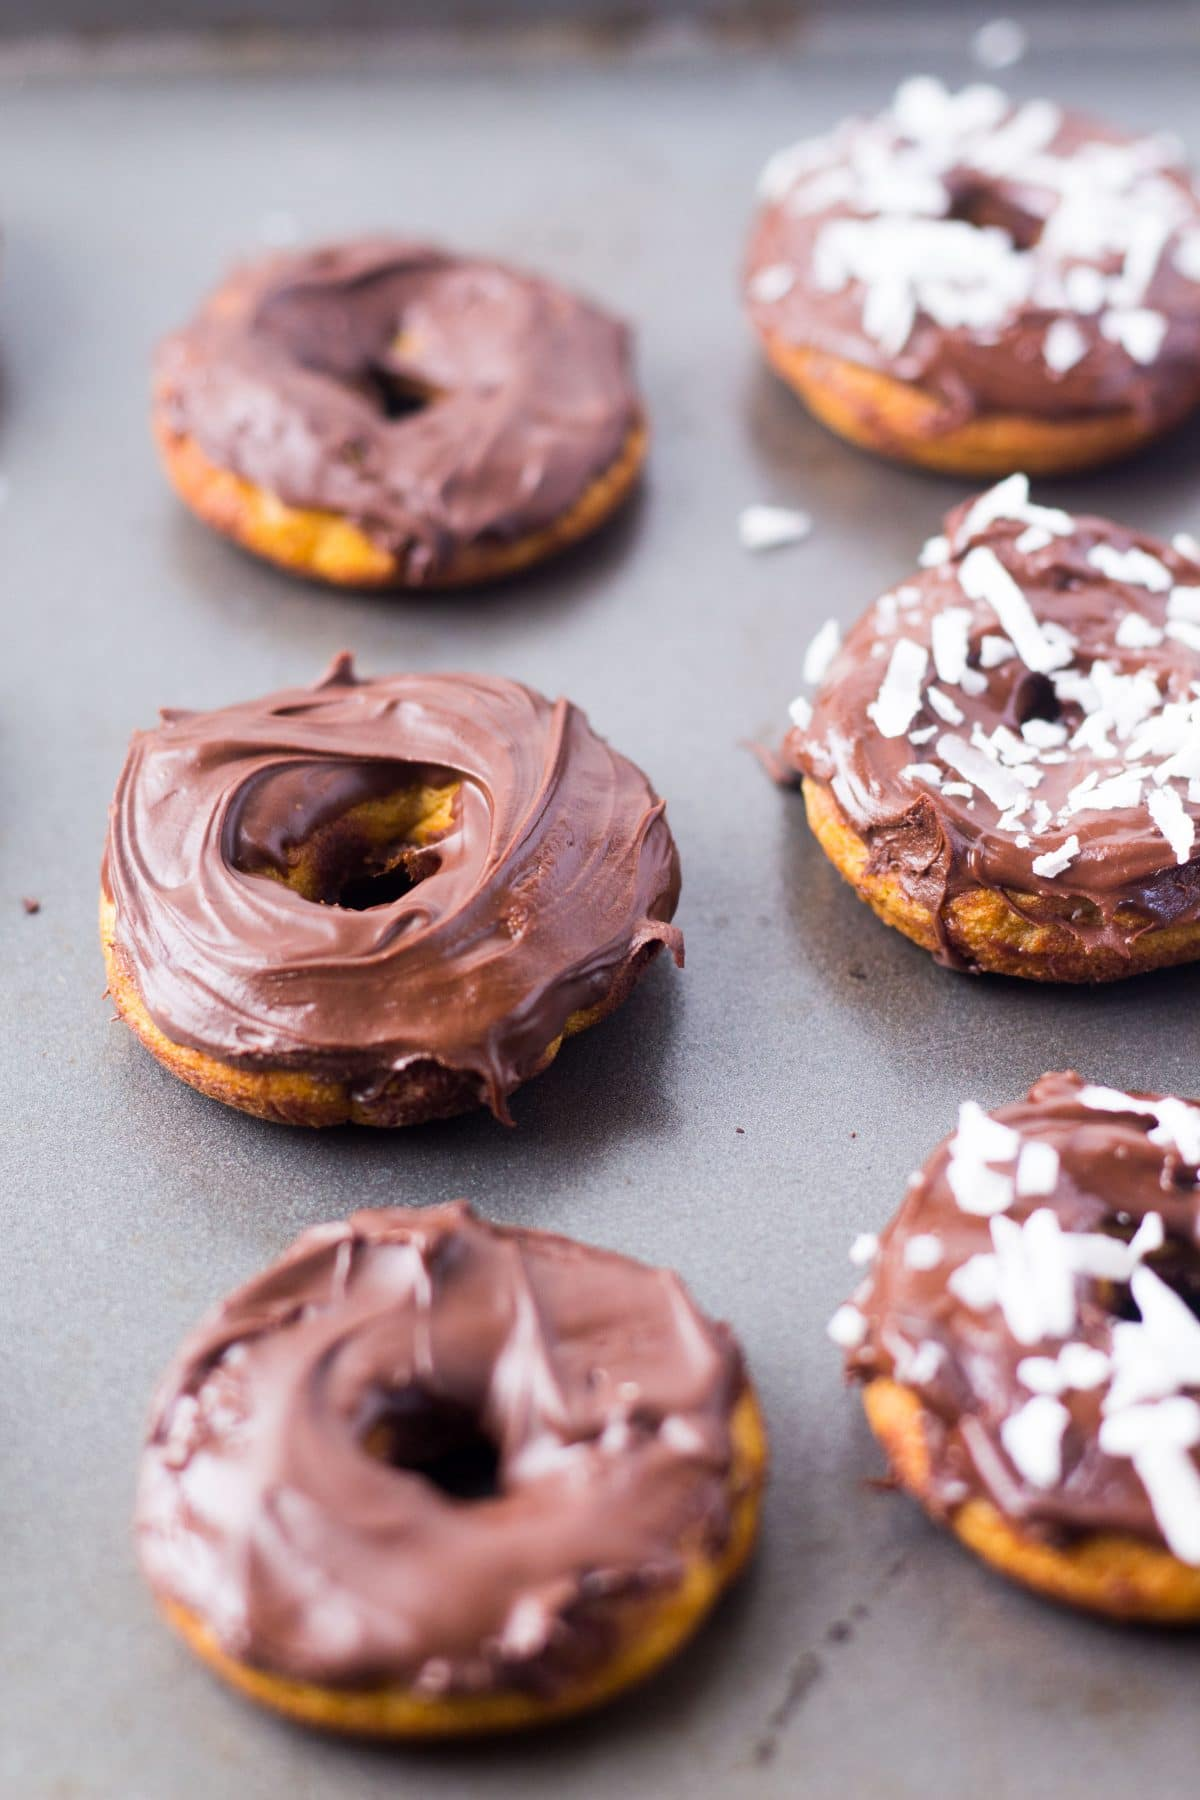 Sweet-Potato-Chocolate-Glazed-Paleo-Donut-image